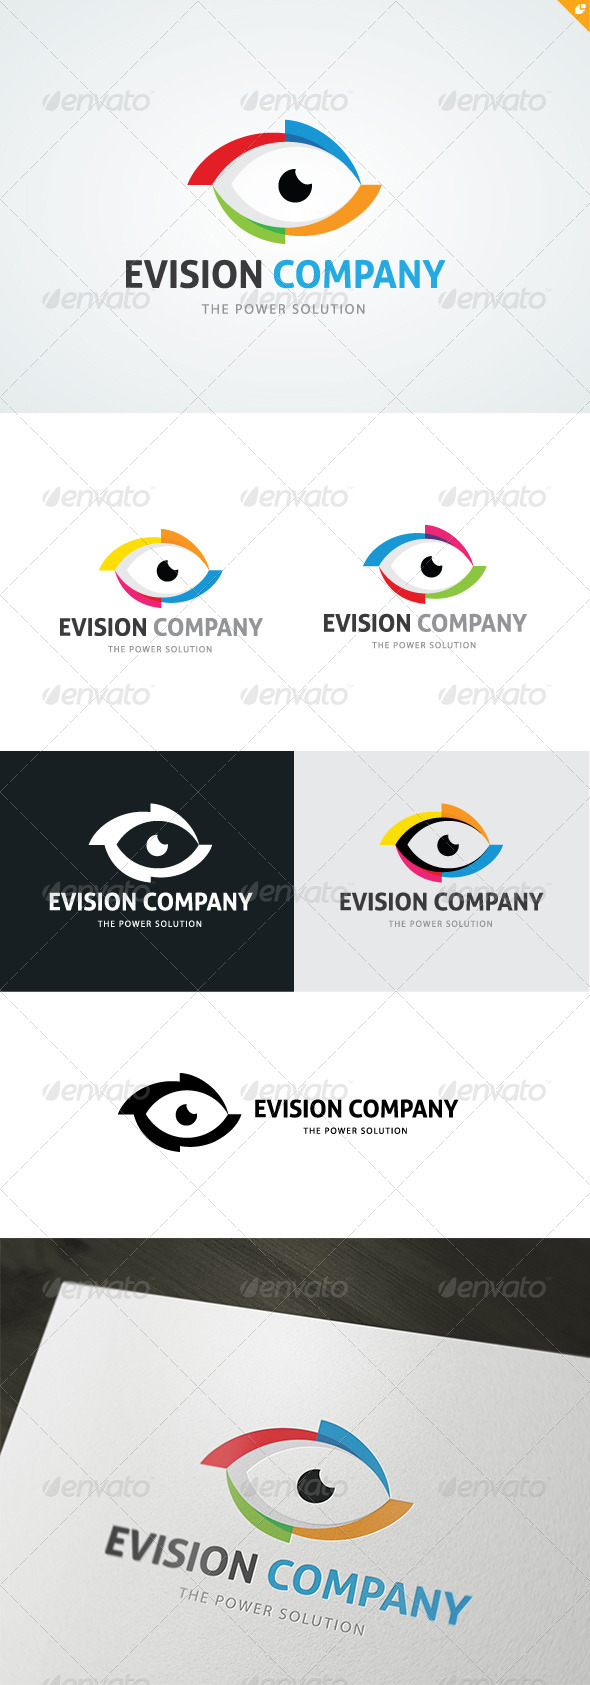 Evision Company Logo - 3d Abstract